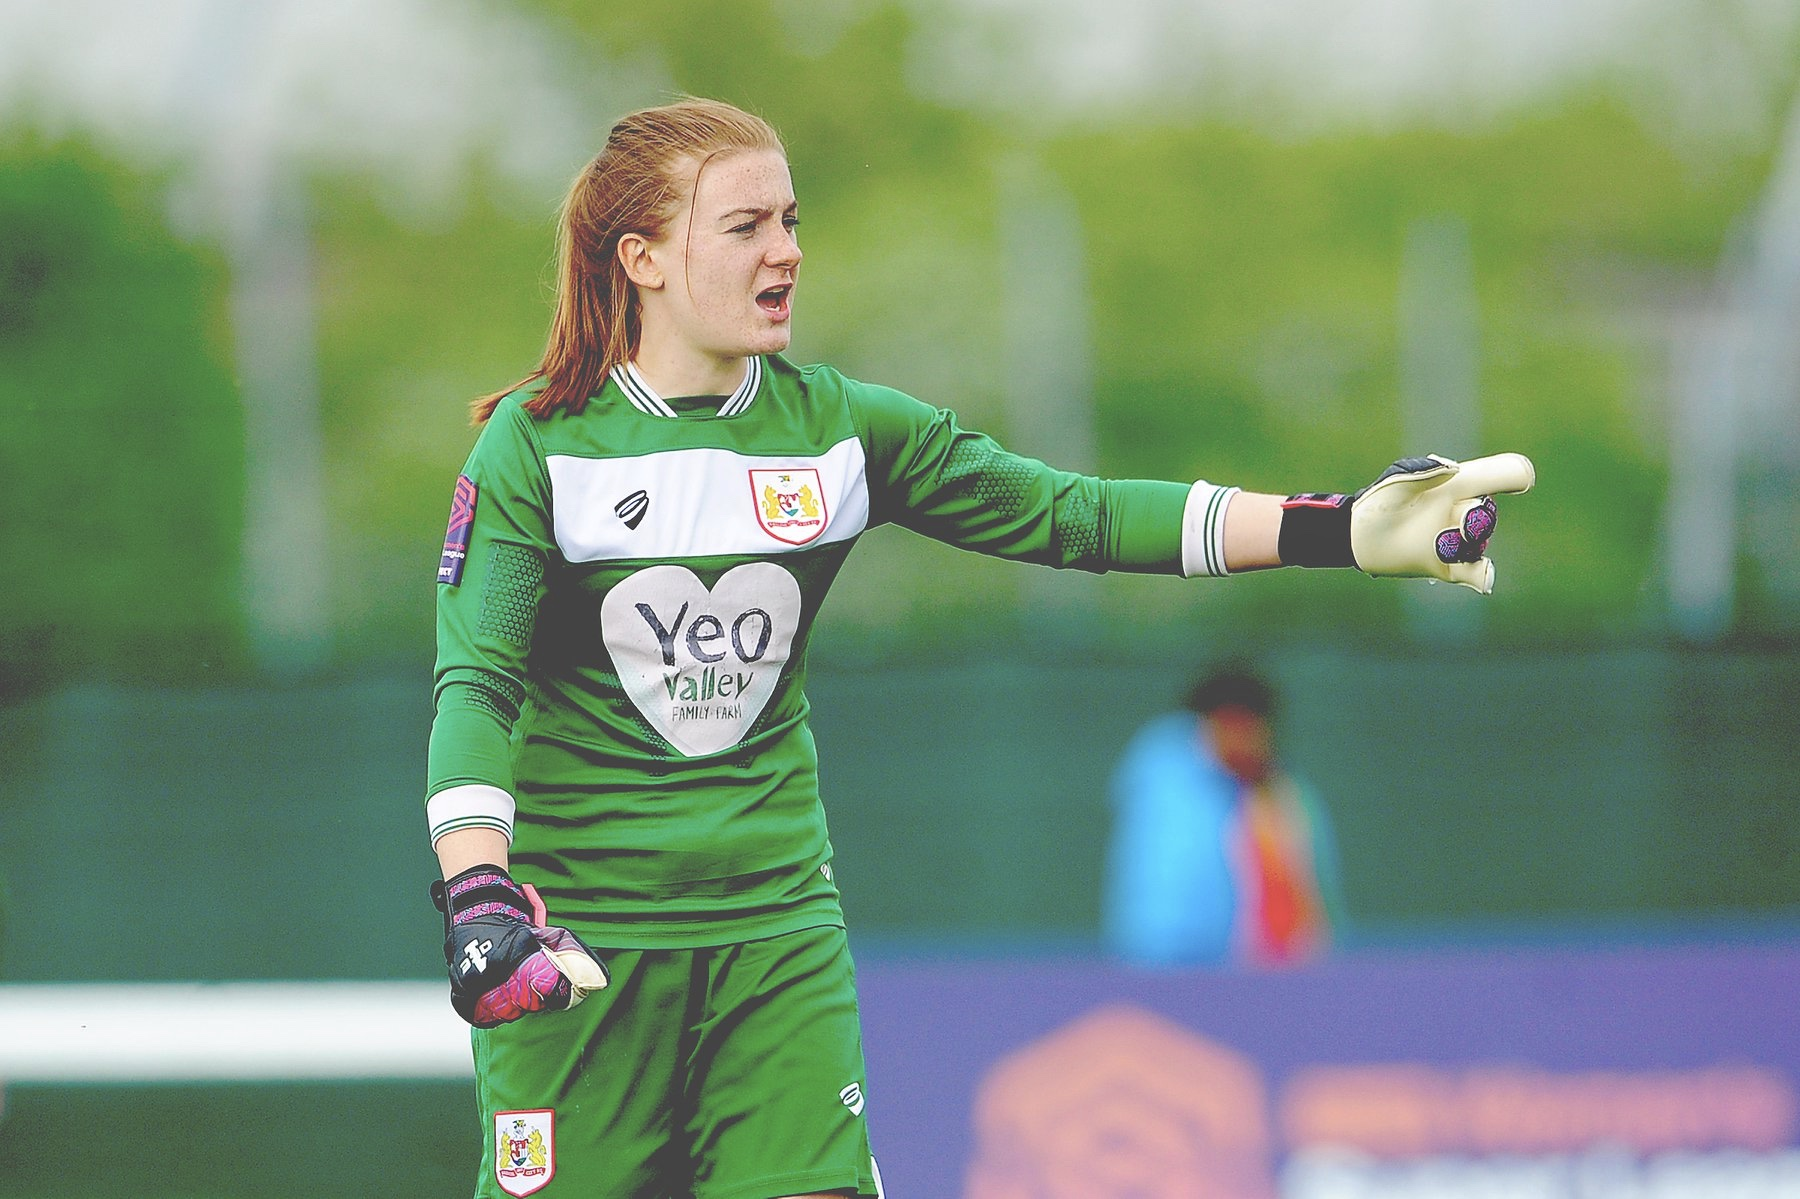 Bristol City's Sophie Baggaley was also named in the PFA team of the season.